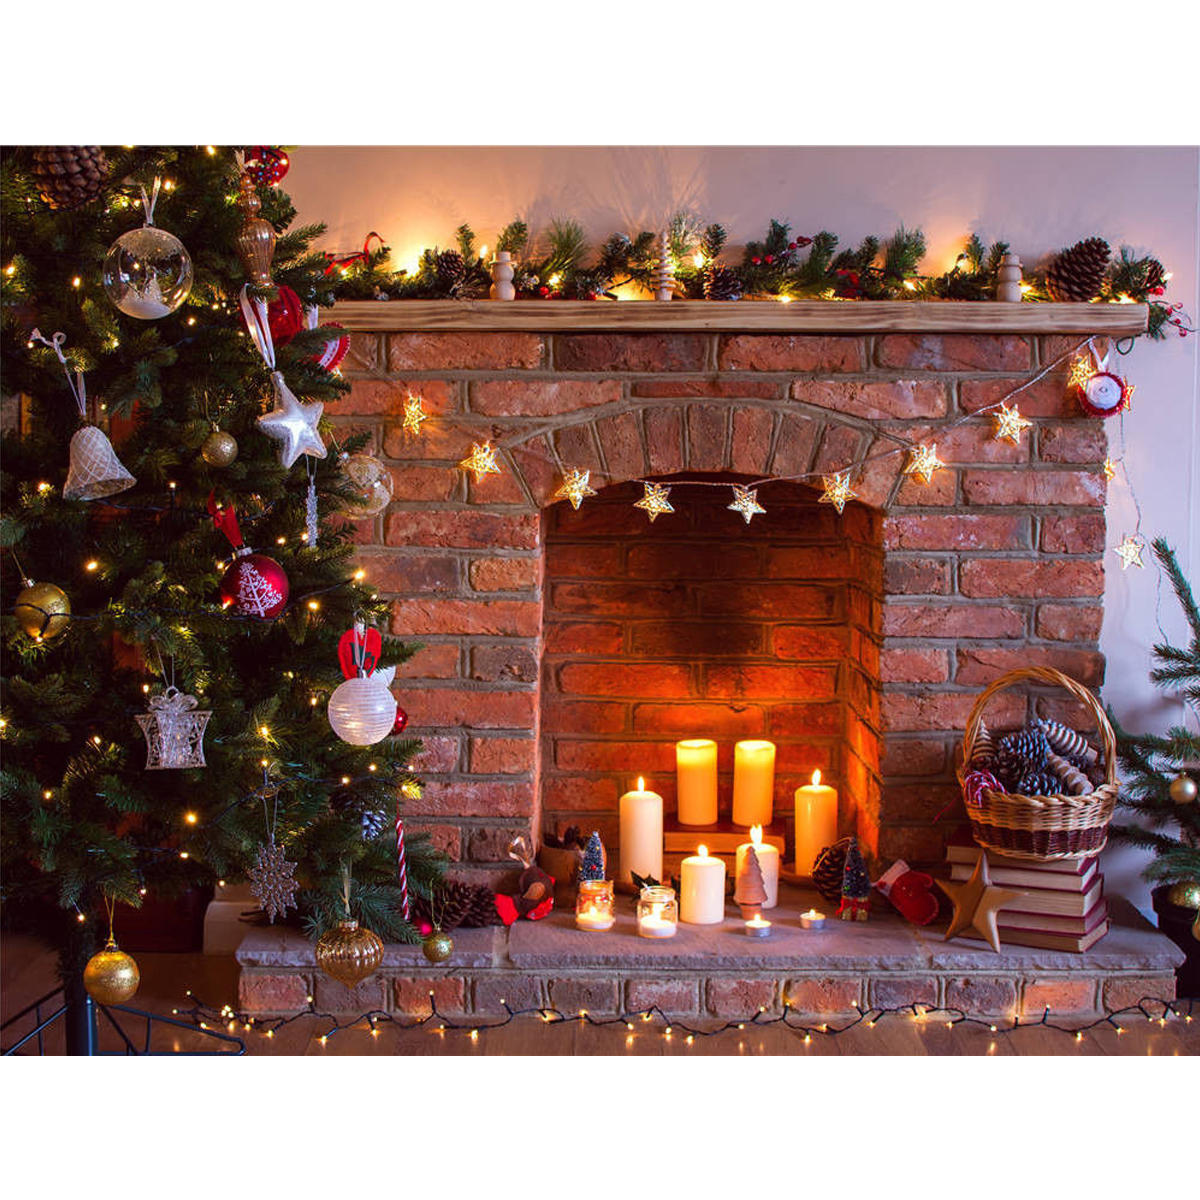 Retro Christmas.7x5ft Vinyl Retro Christmas Tree Fireplace Photography Background Backdrop Props Studio